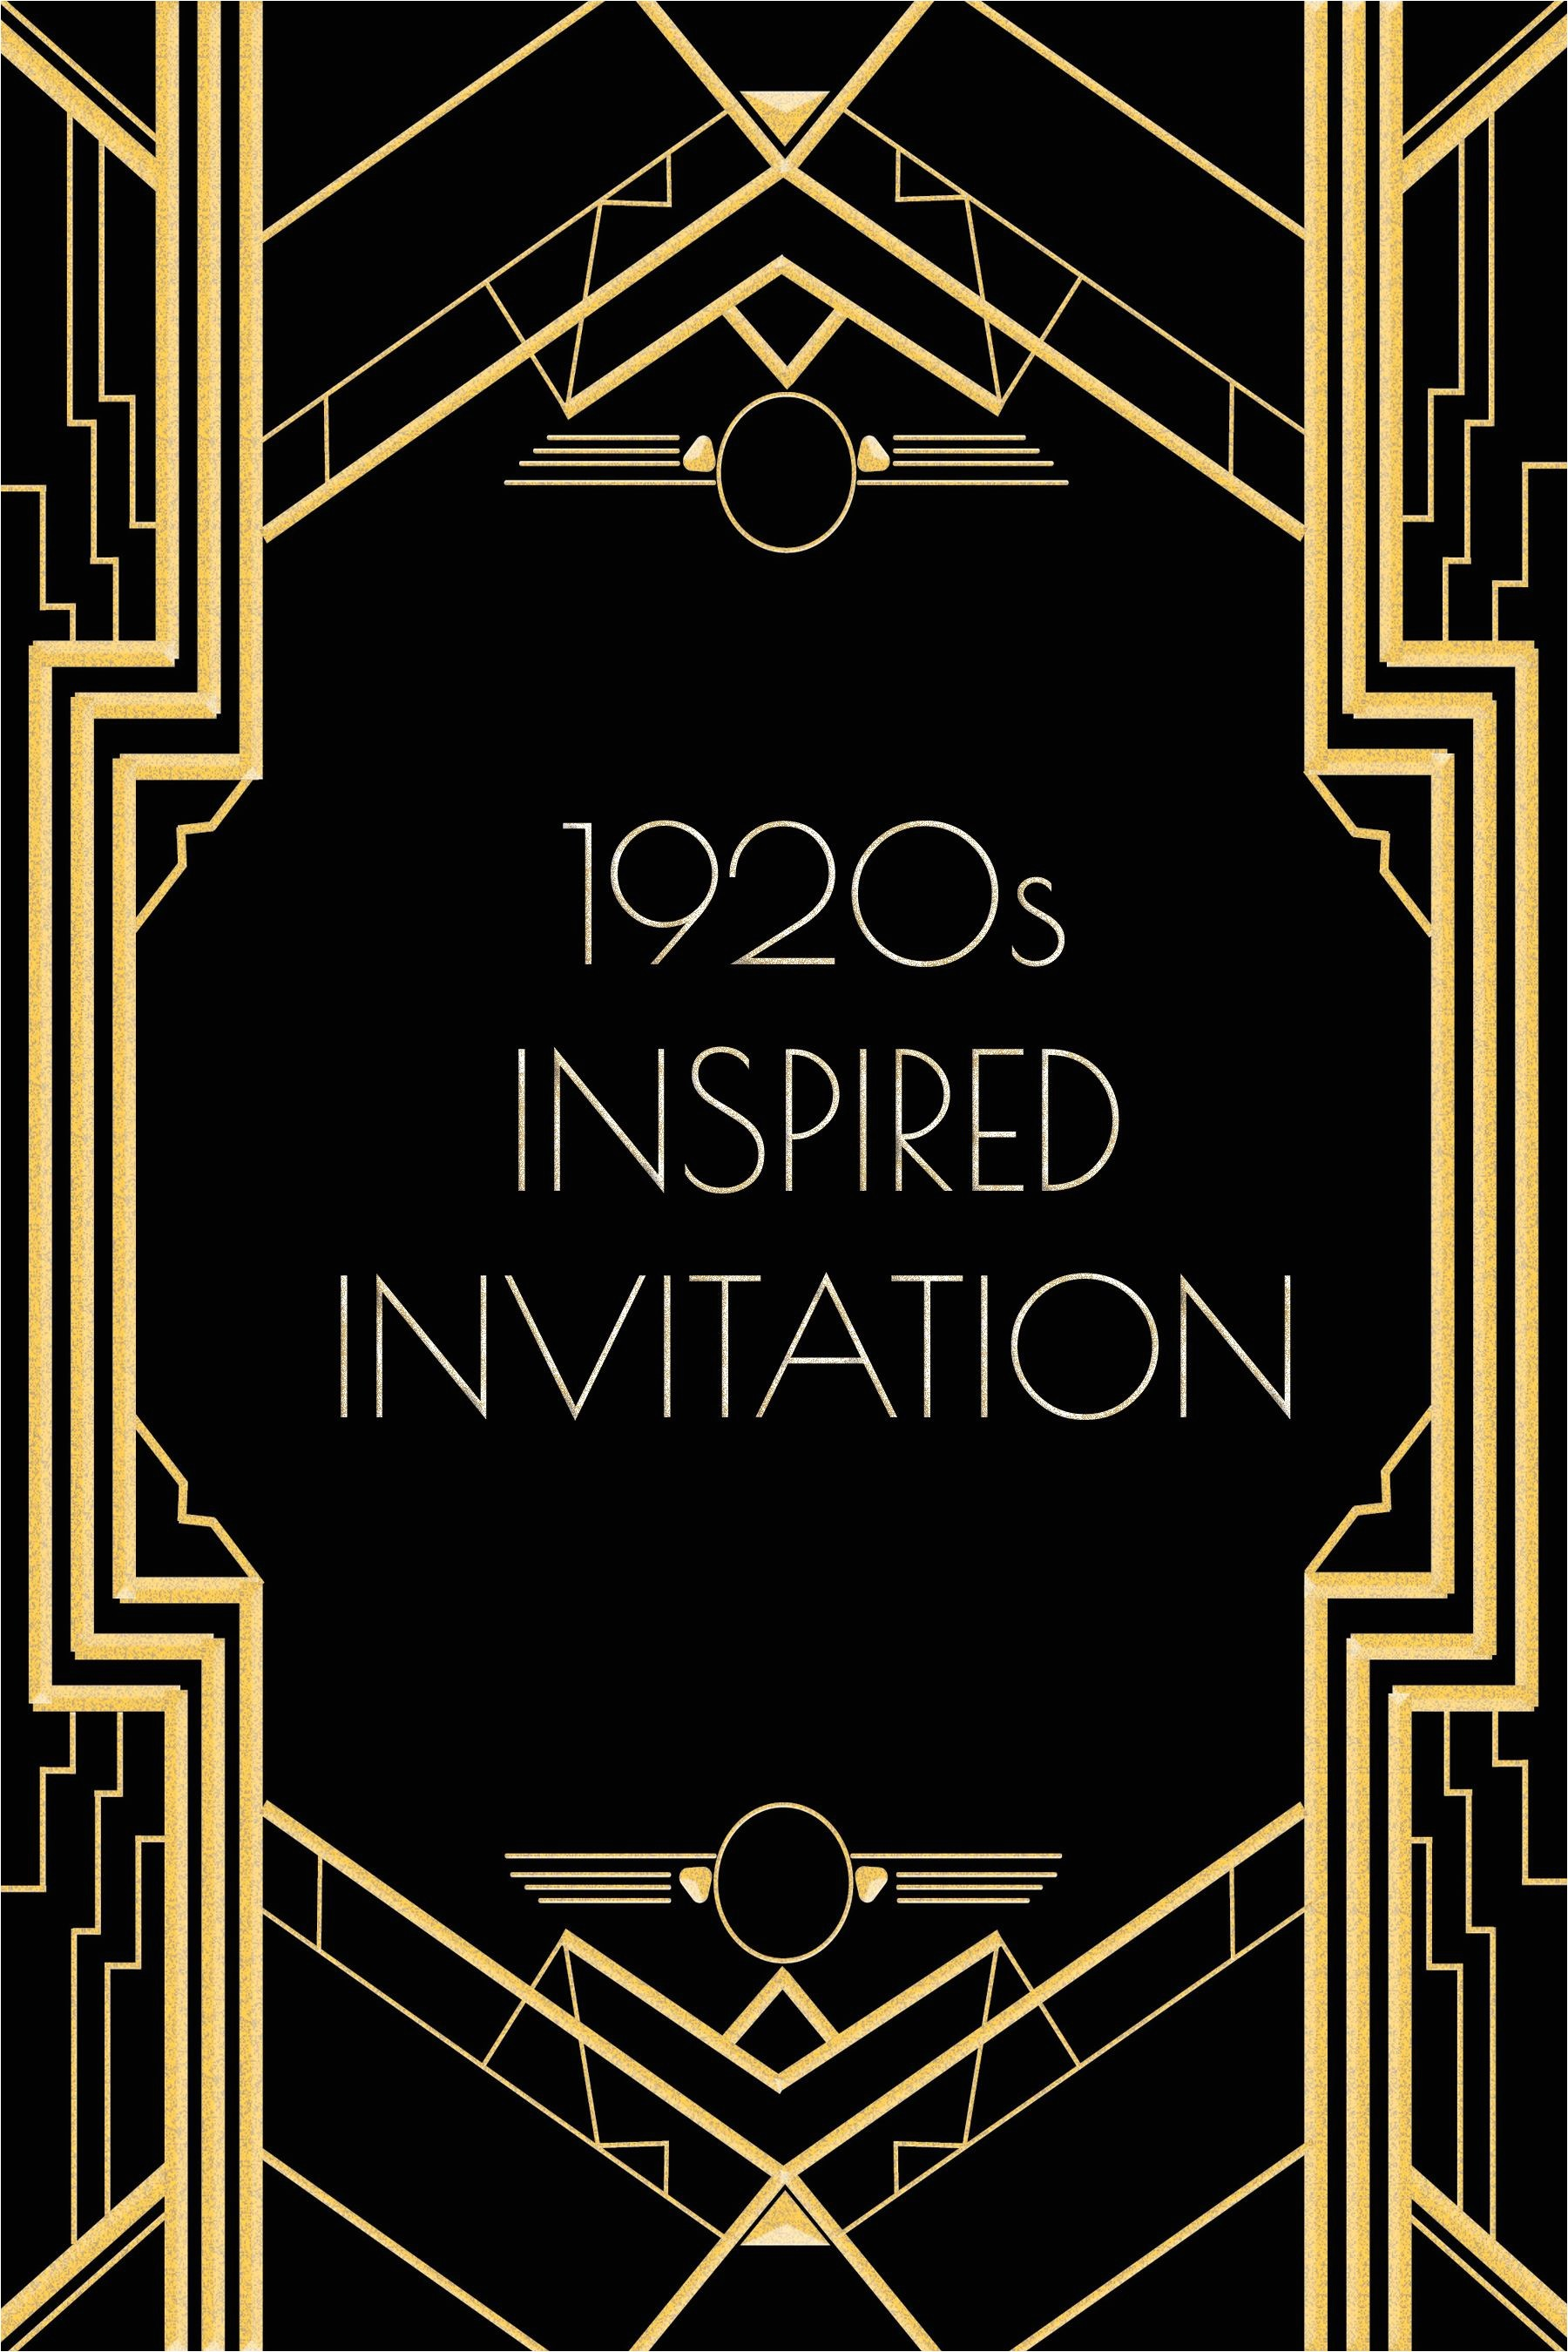 1920s Party Invitation Template Free Use This 1920s Inspired Invitation Template for A Gatsby